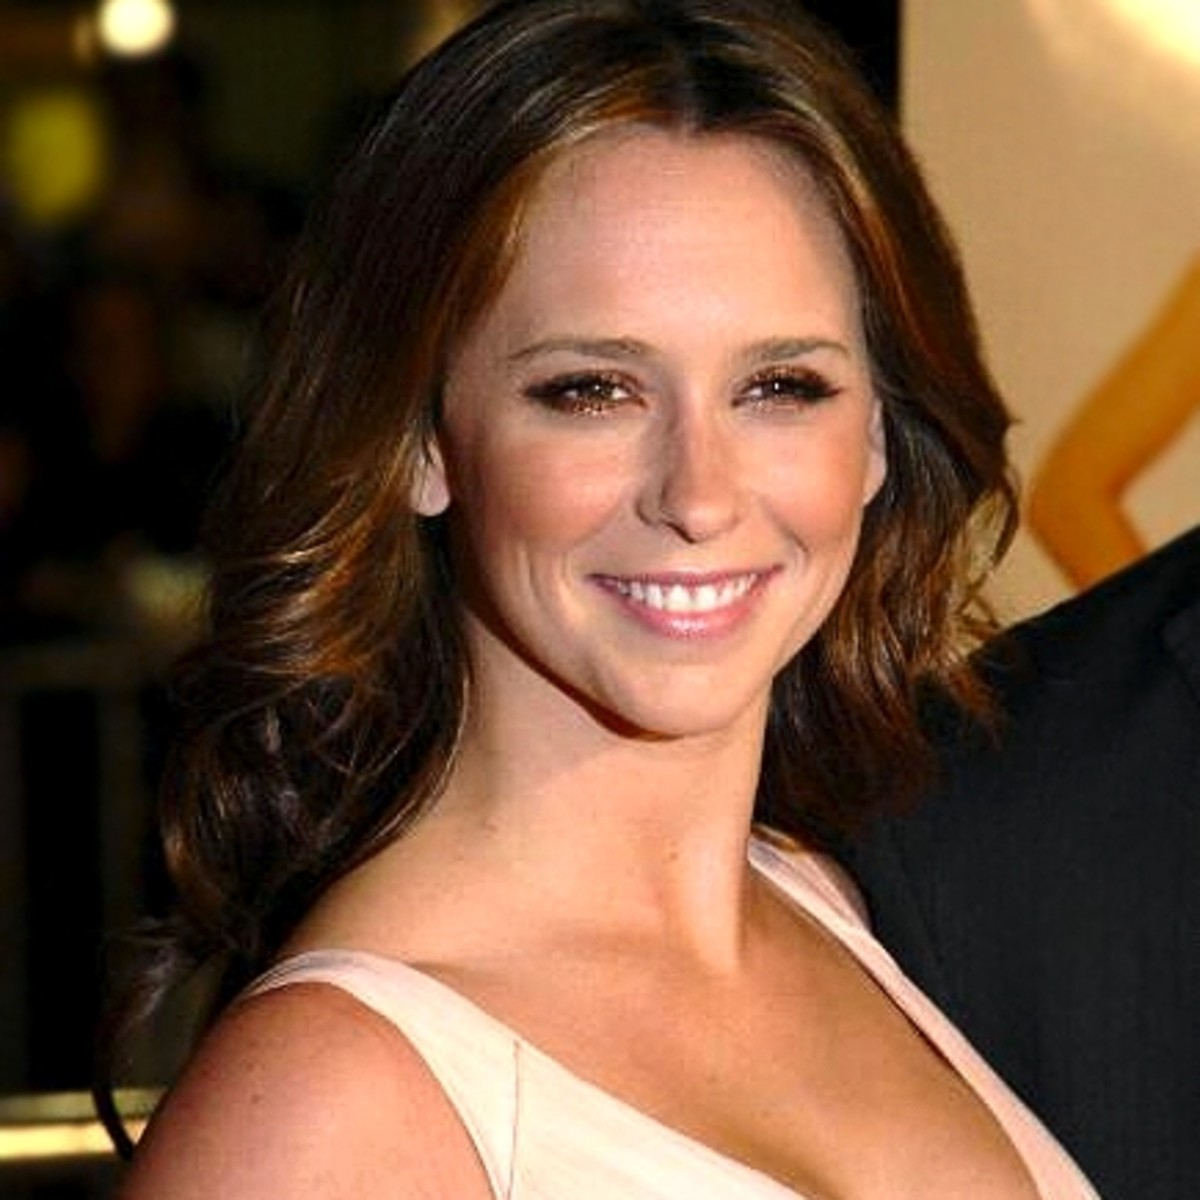 Jennifer Love-Hewitt. Female Celebrities with High Foreheads.